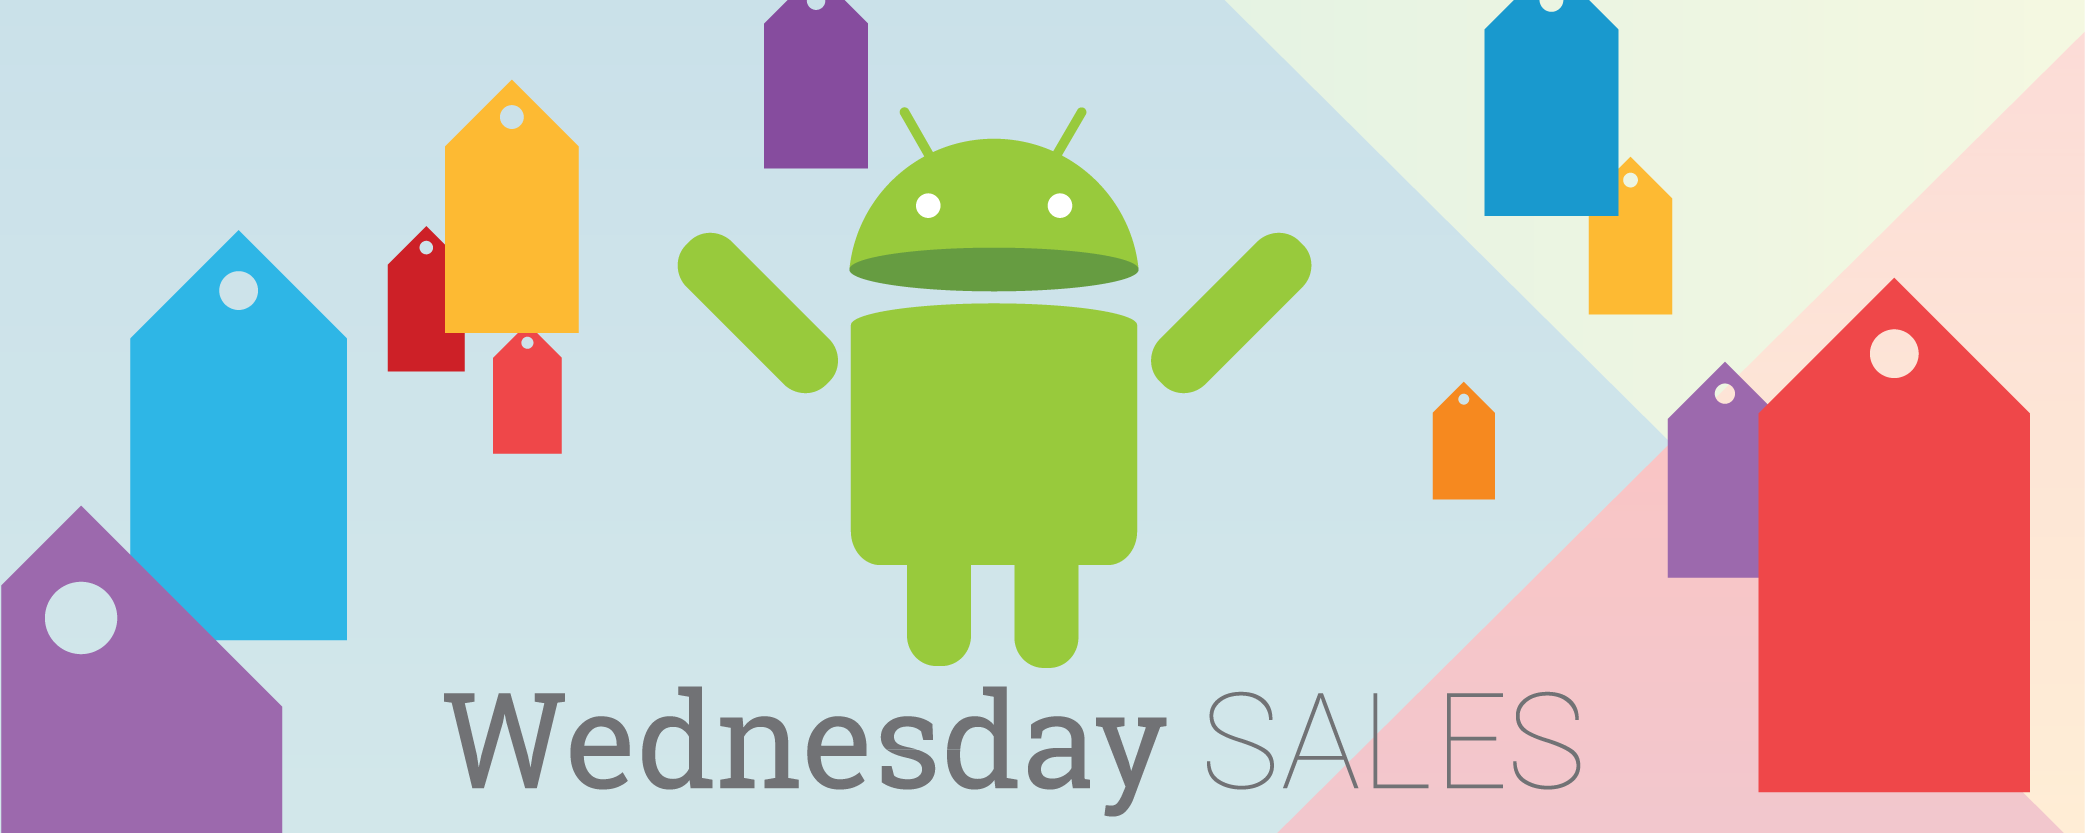 43 temporarily free and 49 on-sale apps and games for Wednesday